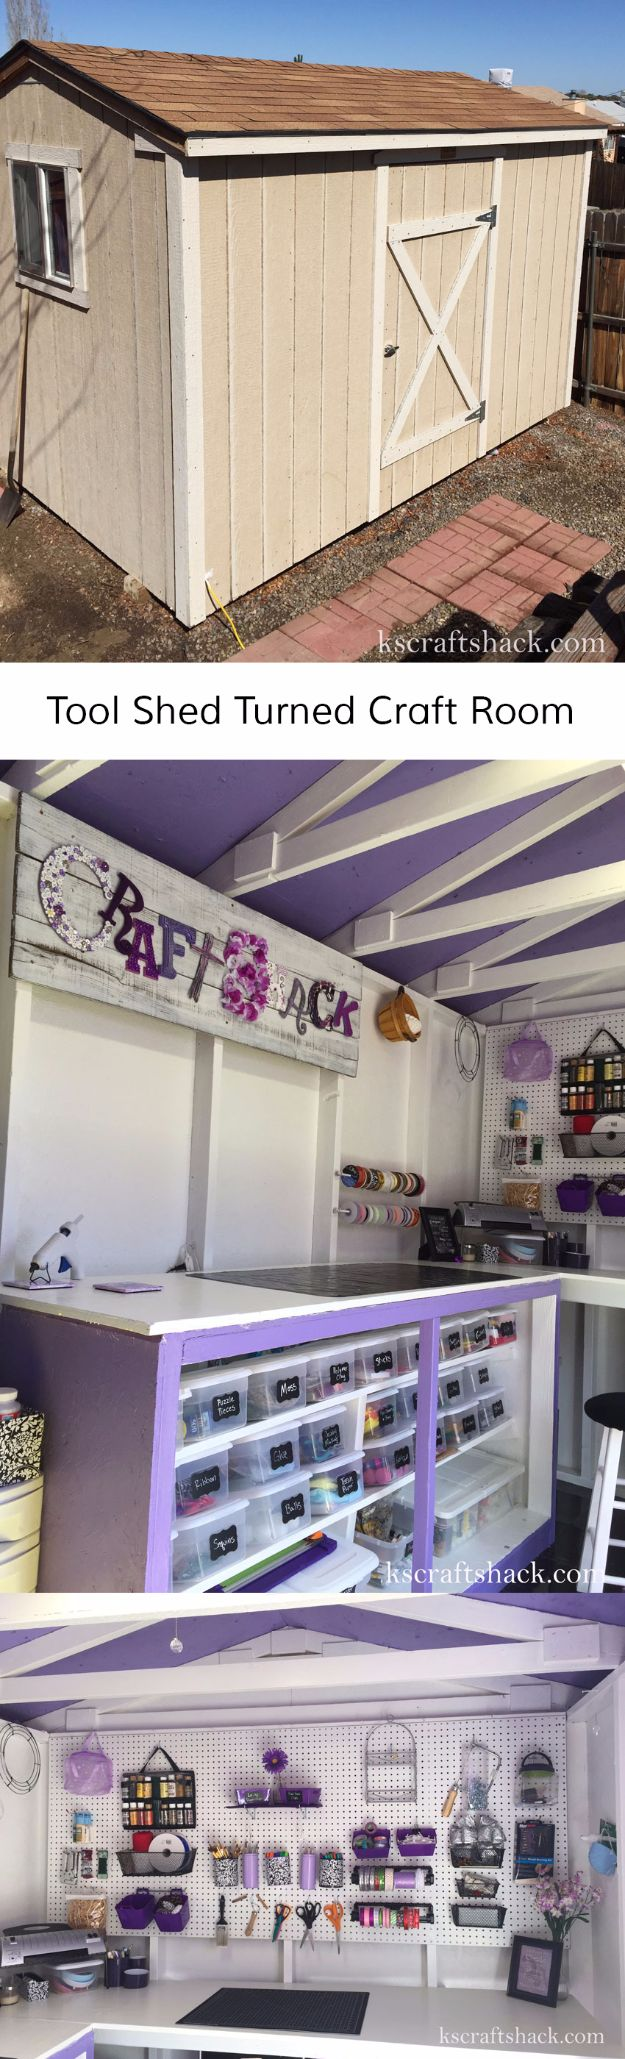 DIY Craft Room Ideas and Craft Room Organization Projects - Purple Peg Board - Cool Ideas for Do It Yourself Craft Storage, Craft Room Decor and Organizing Project Ideas - fabric, paper, pens, creative tools, crafts supplies, shelves and sewing notions